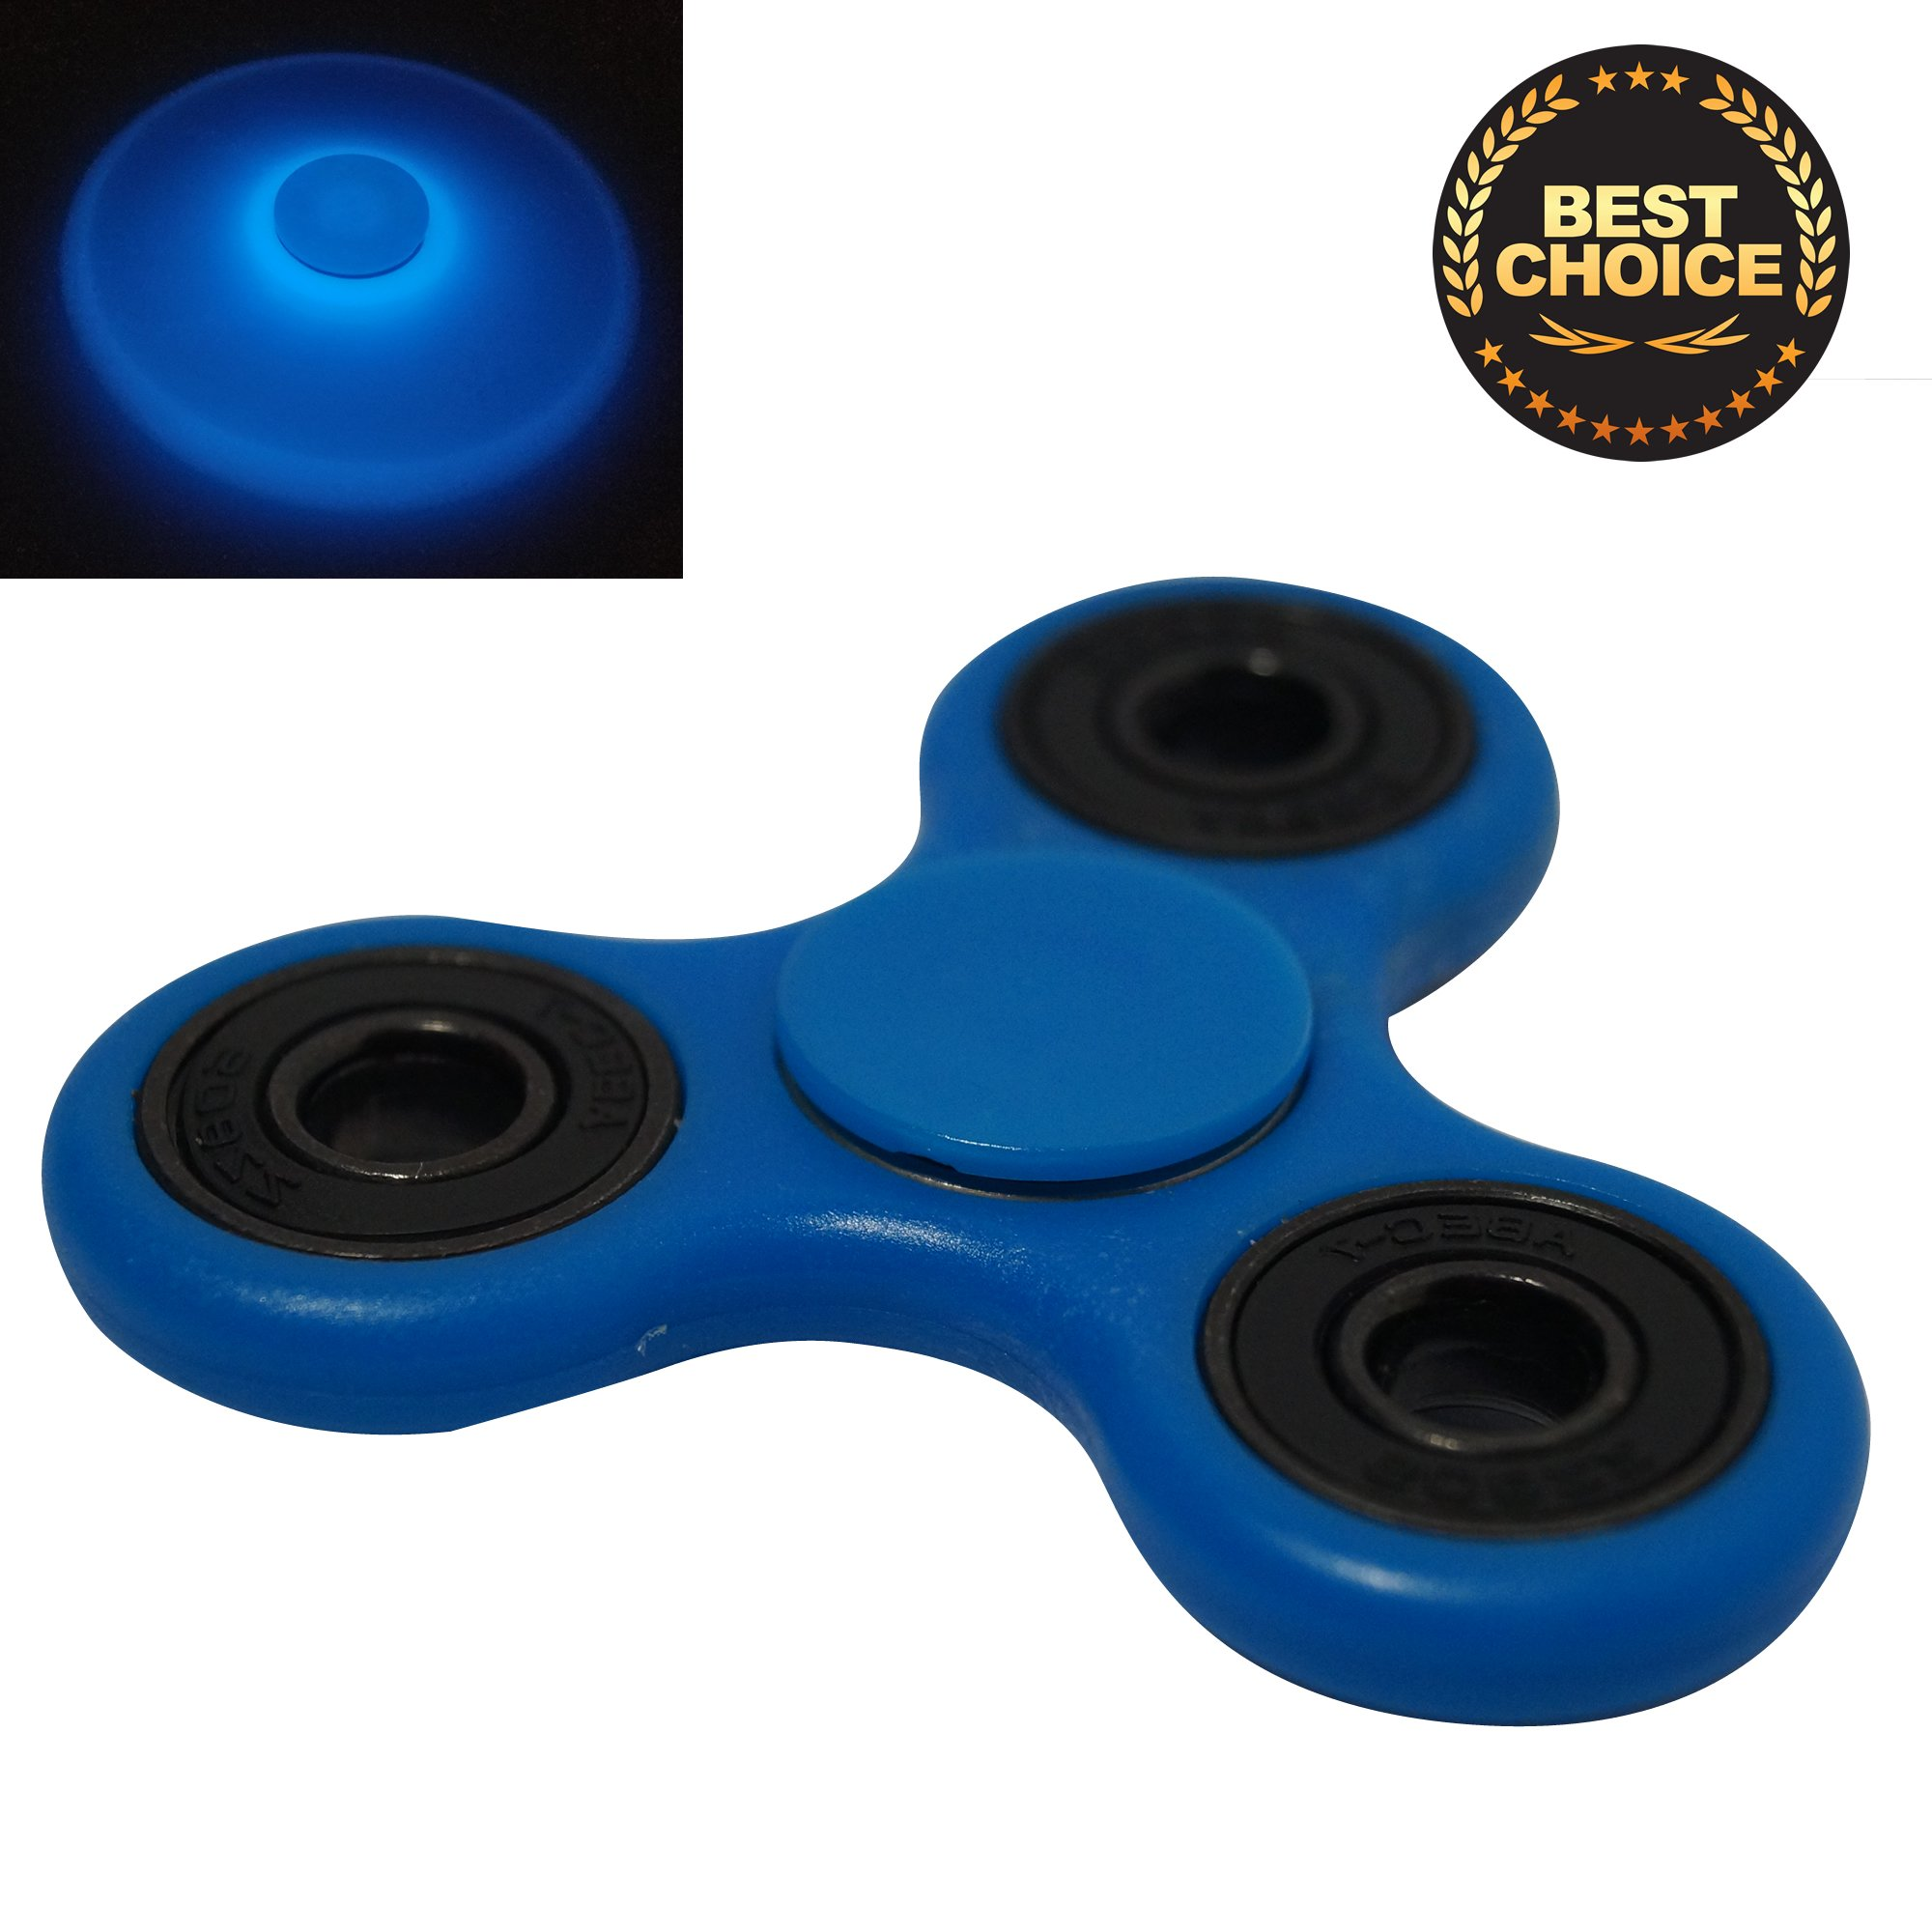 Fidget Spinner GLOW IN THE DARK PRIME Toy Premium Ceramic Bearing Helps Focusing ADD ADHD Perfect for Anxiety Boredom and Autism in Children and Adults Best Stress reducer FLUORESCENT SERIES BLUE by Xget